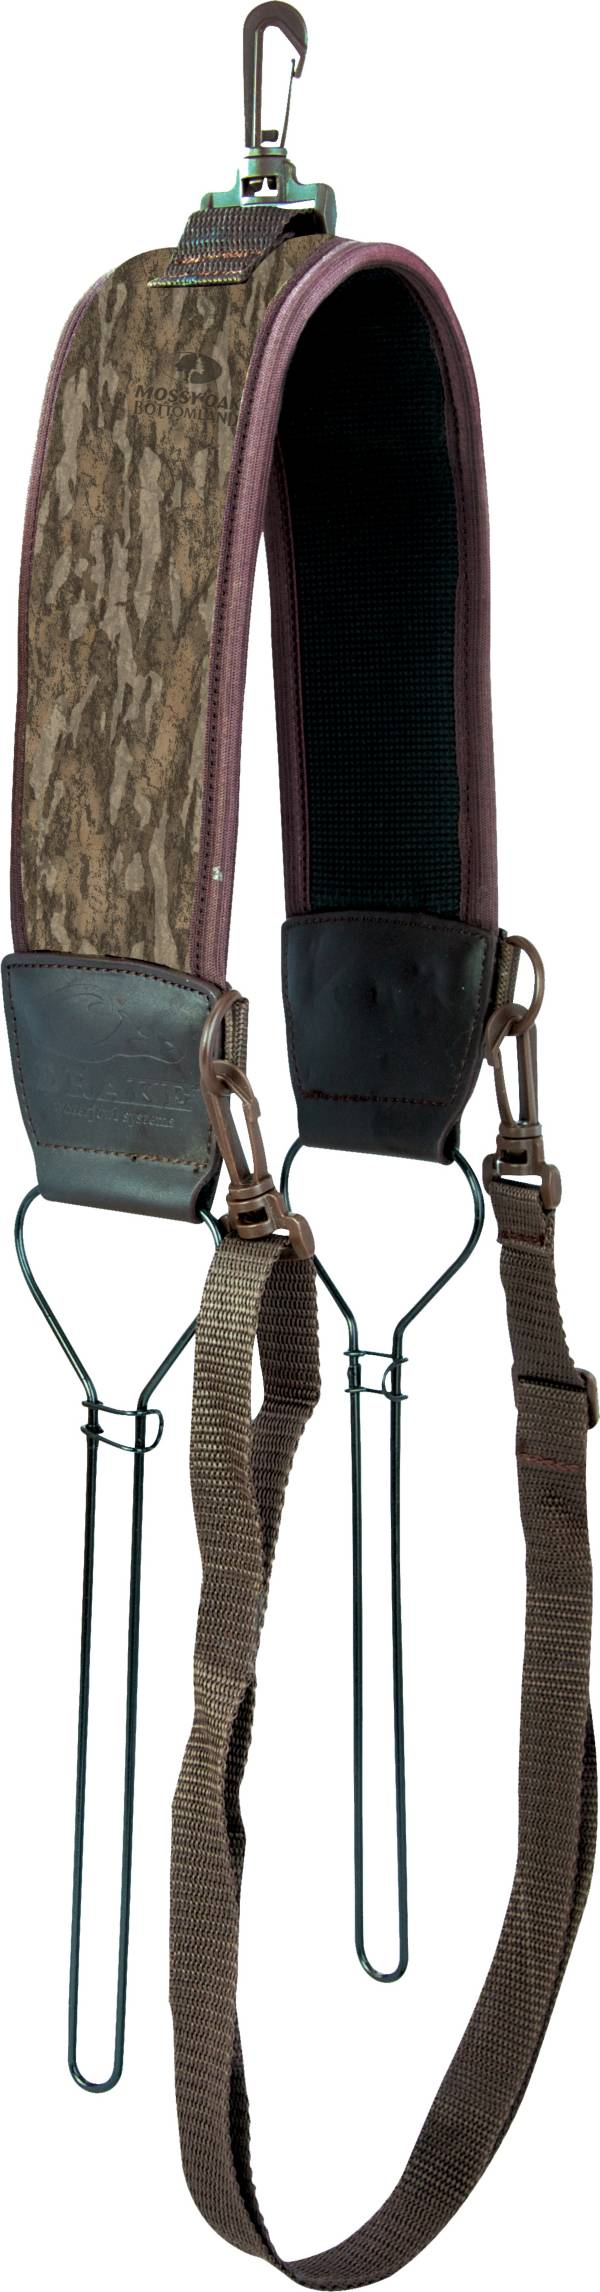 Drake Waterfowl Over the Shoulder Metal Loop Game Carrier product image